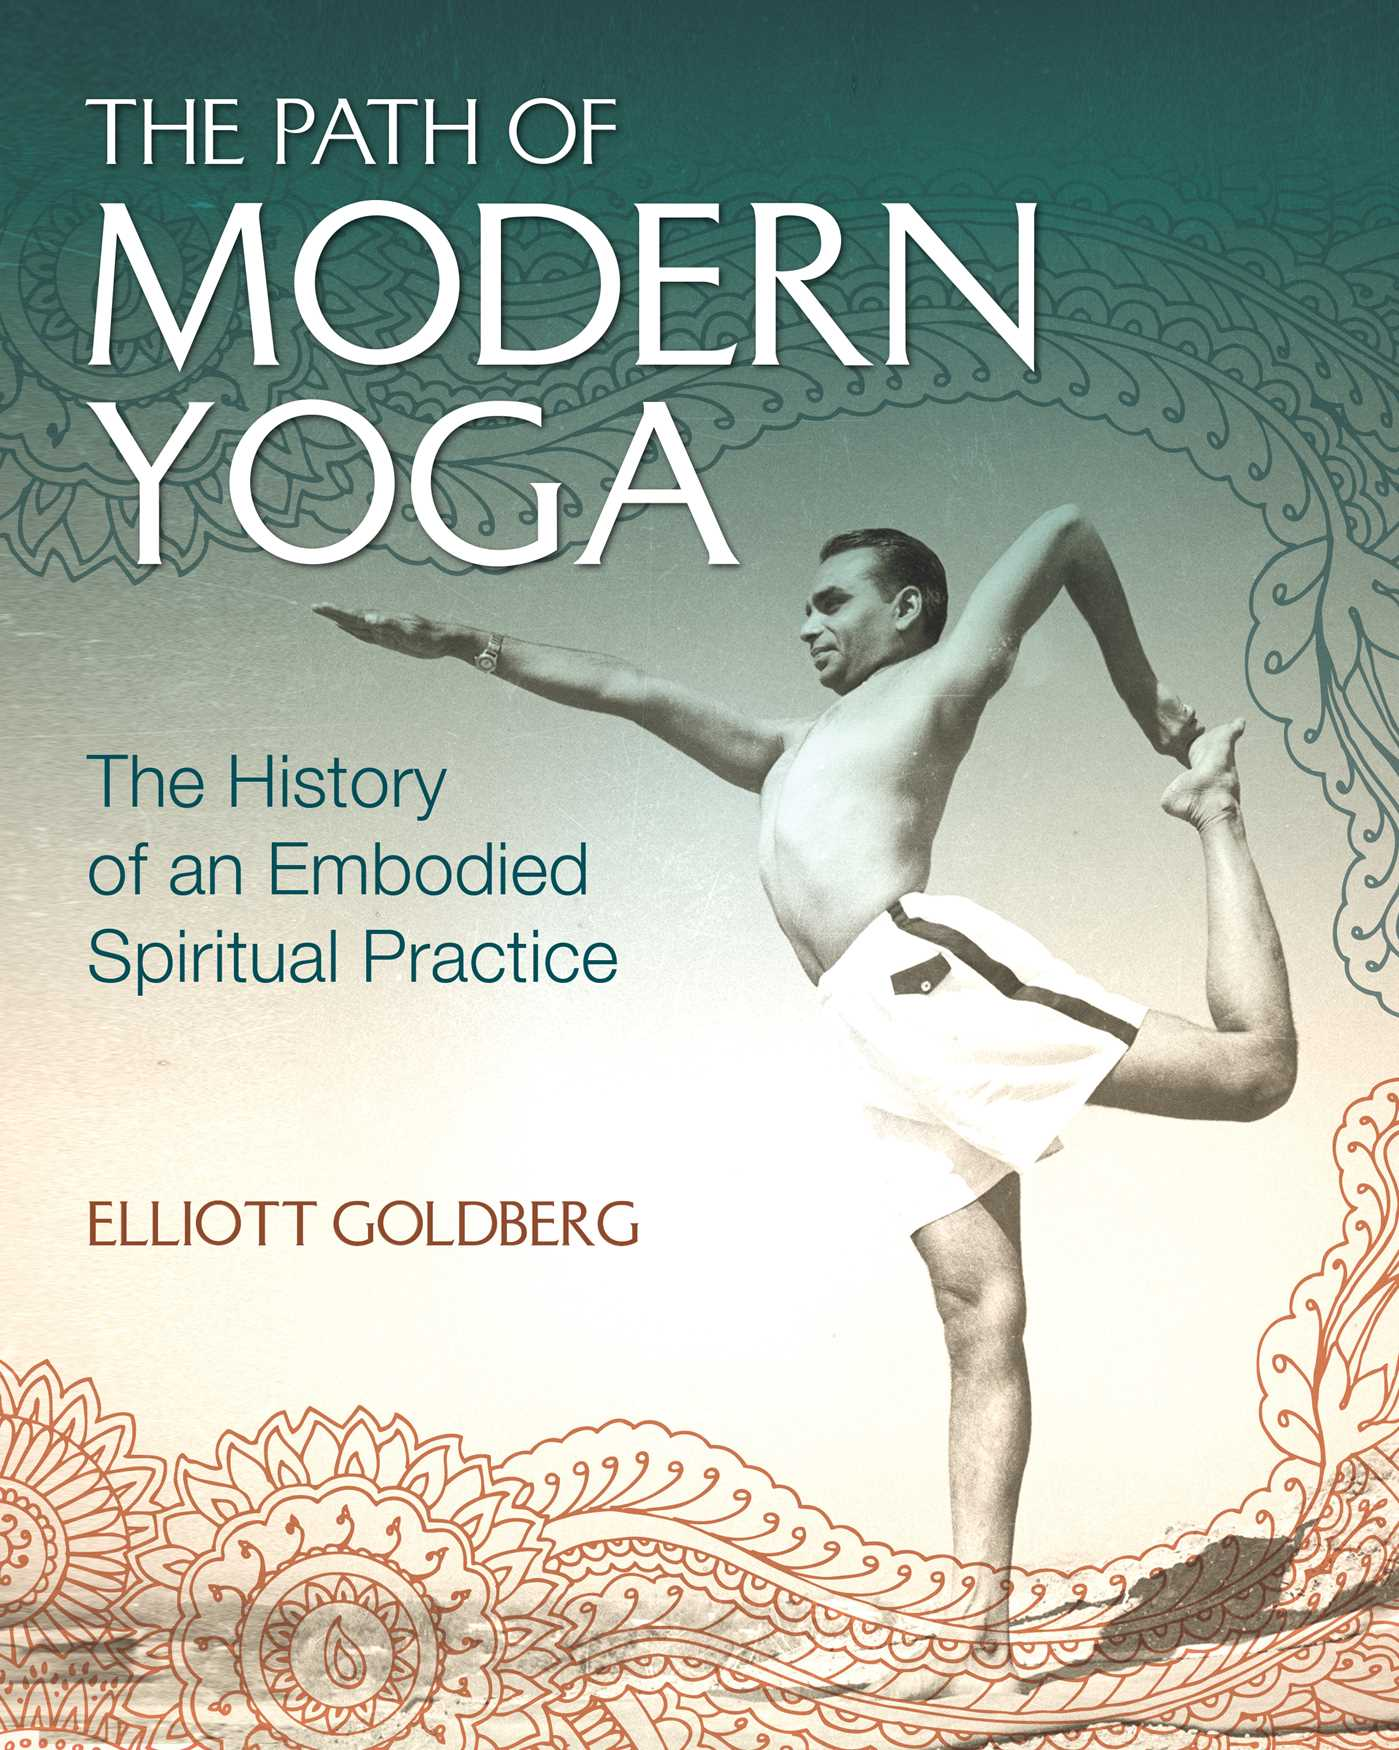 The path of modern yoga 9781620555675 hr